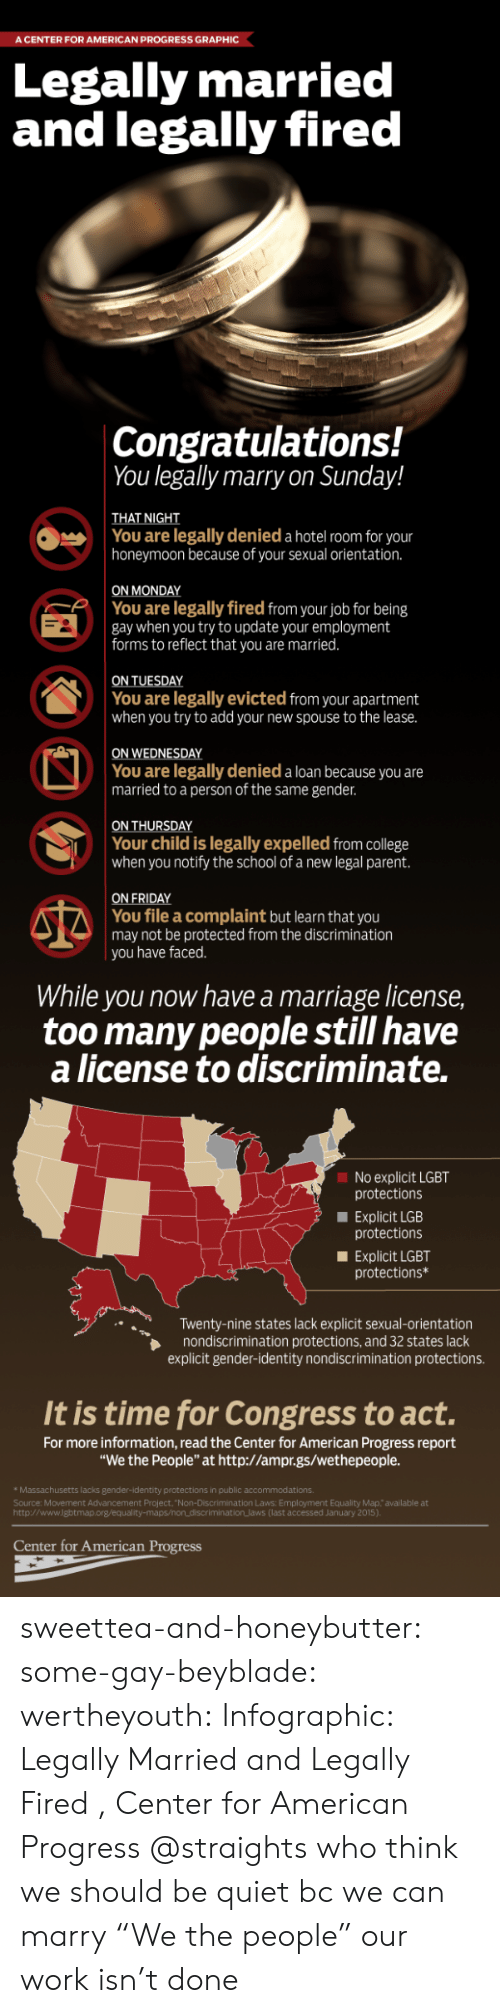 """lacks: A CENTER FOR AMERICAN PROGRESS GRAPHIC  Legally married  and legally fired  Congratulations!  You legally marry on Sunday!  THAT NIGHT  honeymoon because of your sexual orientation.  ON MONDAY  You are legally denied a hotel room for your  You are legally fired from your job for being  gay when you try to update your employment  forms to reflect that you are married  You are legally evicted from your apartment  when you try to add your new spouse to the lease.  ON WEDNESDAY  You are legally denied a loan because you are  married to a person of the same gender.  ON THURSDAY  Your child is legally expelled from college  when you notify the school of a new legal parent.  ON FRIDAY  You file a complaint but learn that you  may not be protected from the discrimination  you have faced.  While you now have a marriage license,  too many people still have  a license to discriminate.  No explicit LGBT  protections  Explicit LGB  protections  Explicit LGBT  protections*  Twenty-nine states lack explicit sexual-orientation  nondiscrimination protections, and 32 states lack  explicit gender-identity nondiscrimination protections.  It is time for Congress to act.  For more information, read the Center for American Progress report  """"We the People"""" at http://ampr.gs/wethepeople.  Massachusetts lacks gender-identity protections in public accommodations.  Source: Movement Advancement Project. """"Non-Discrimination Laws: Employment Equality Map,""""available at  http://www.lgbtmap.org/equalit  riminationlaws (last accessed January 2015)  Center for American Progress sweettea-and-honeybutter:  some-gay-beyblade:  wertheyouth: Infographic: Legally Married and Legally Fired , Center for American Progress  @straights who think we should be quiet bc we can marry   """"We the people"""" our work isn't done"""